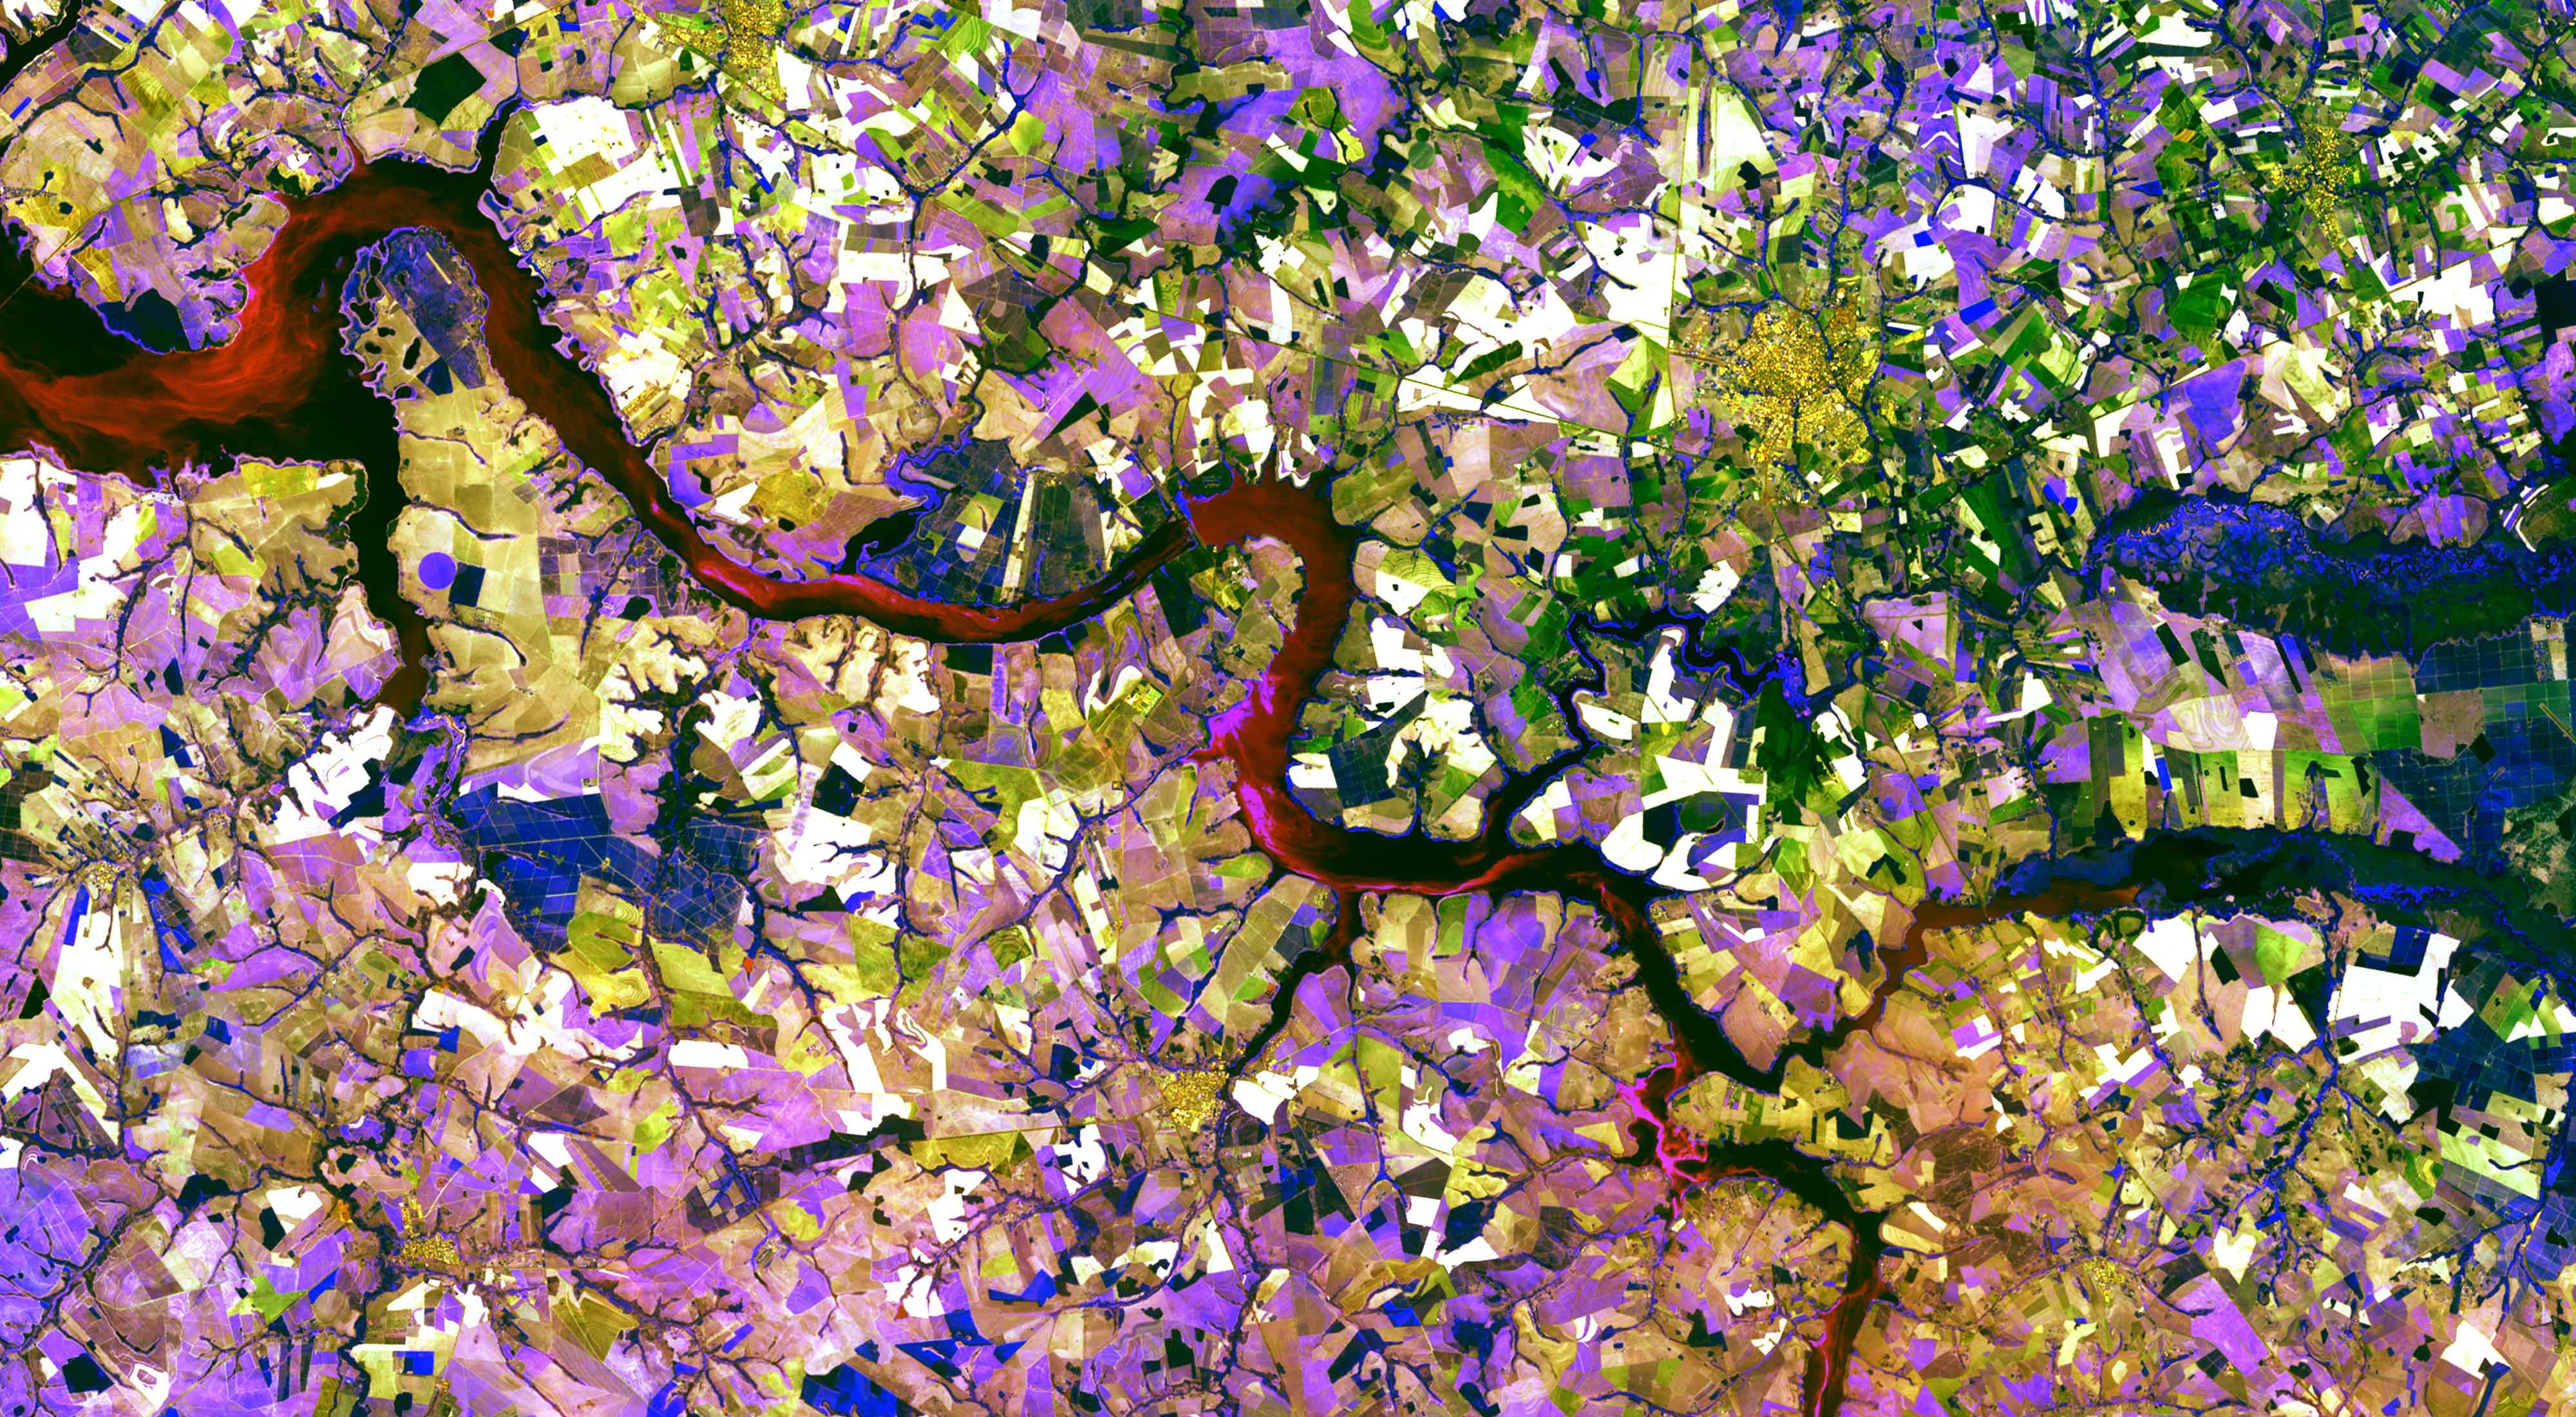 The Tietê River snakes across this tessera mosaic of multicolored shapes near Ibitinga, Brazil. Fields of sugarcane, peanuts, and corn vary in their stages of development.